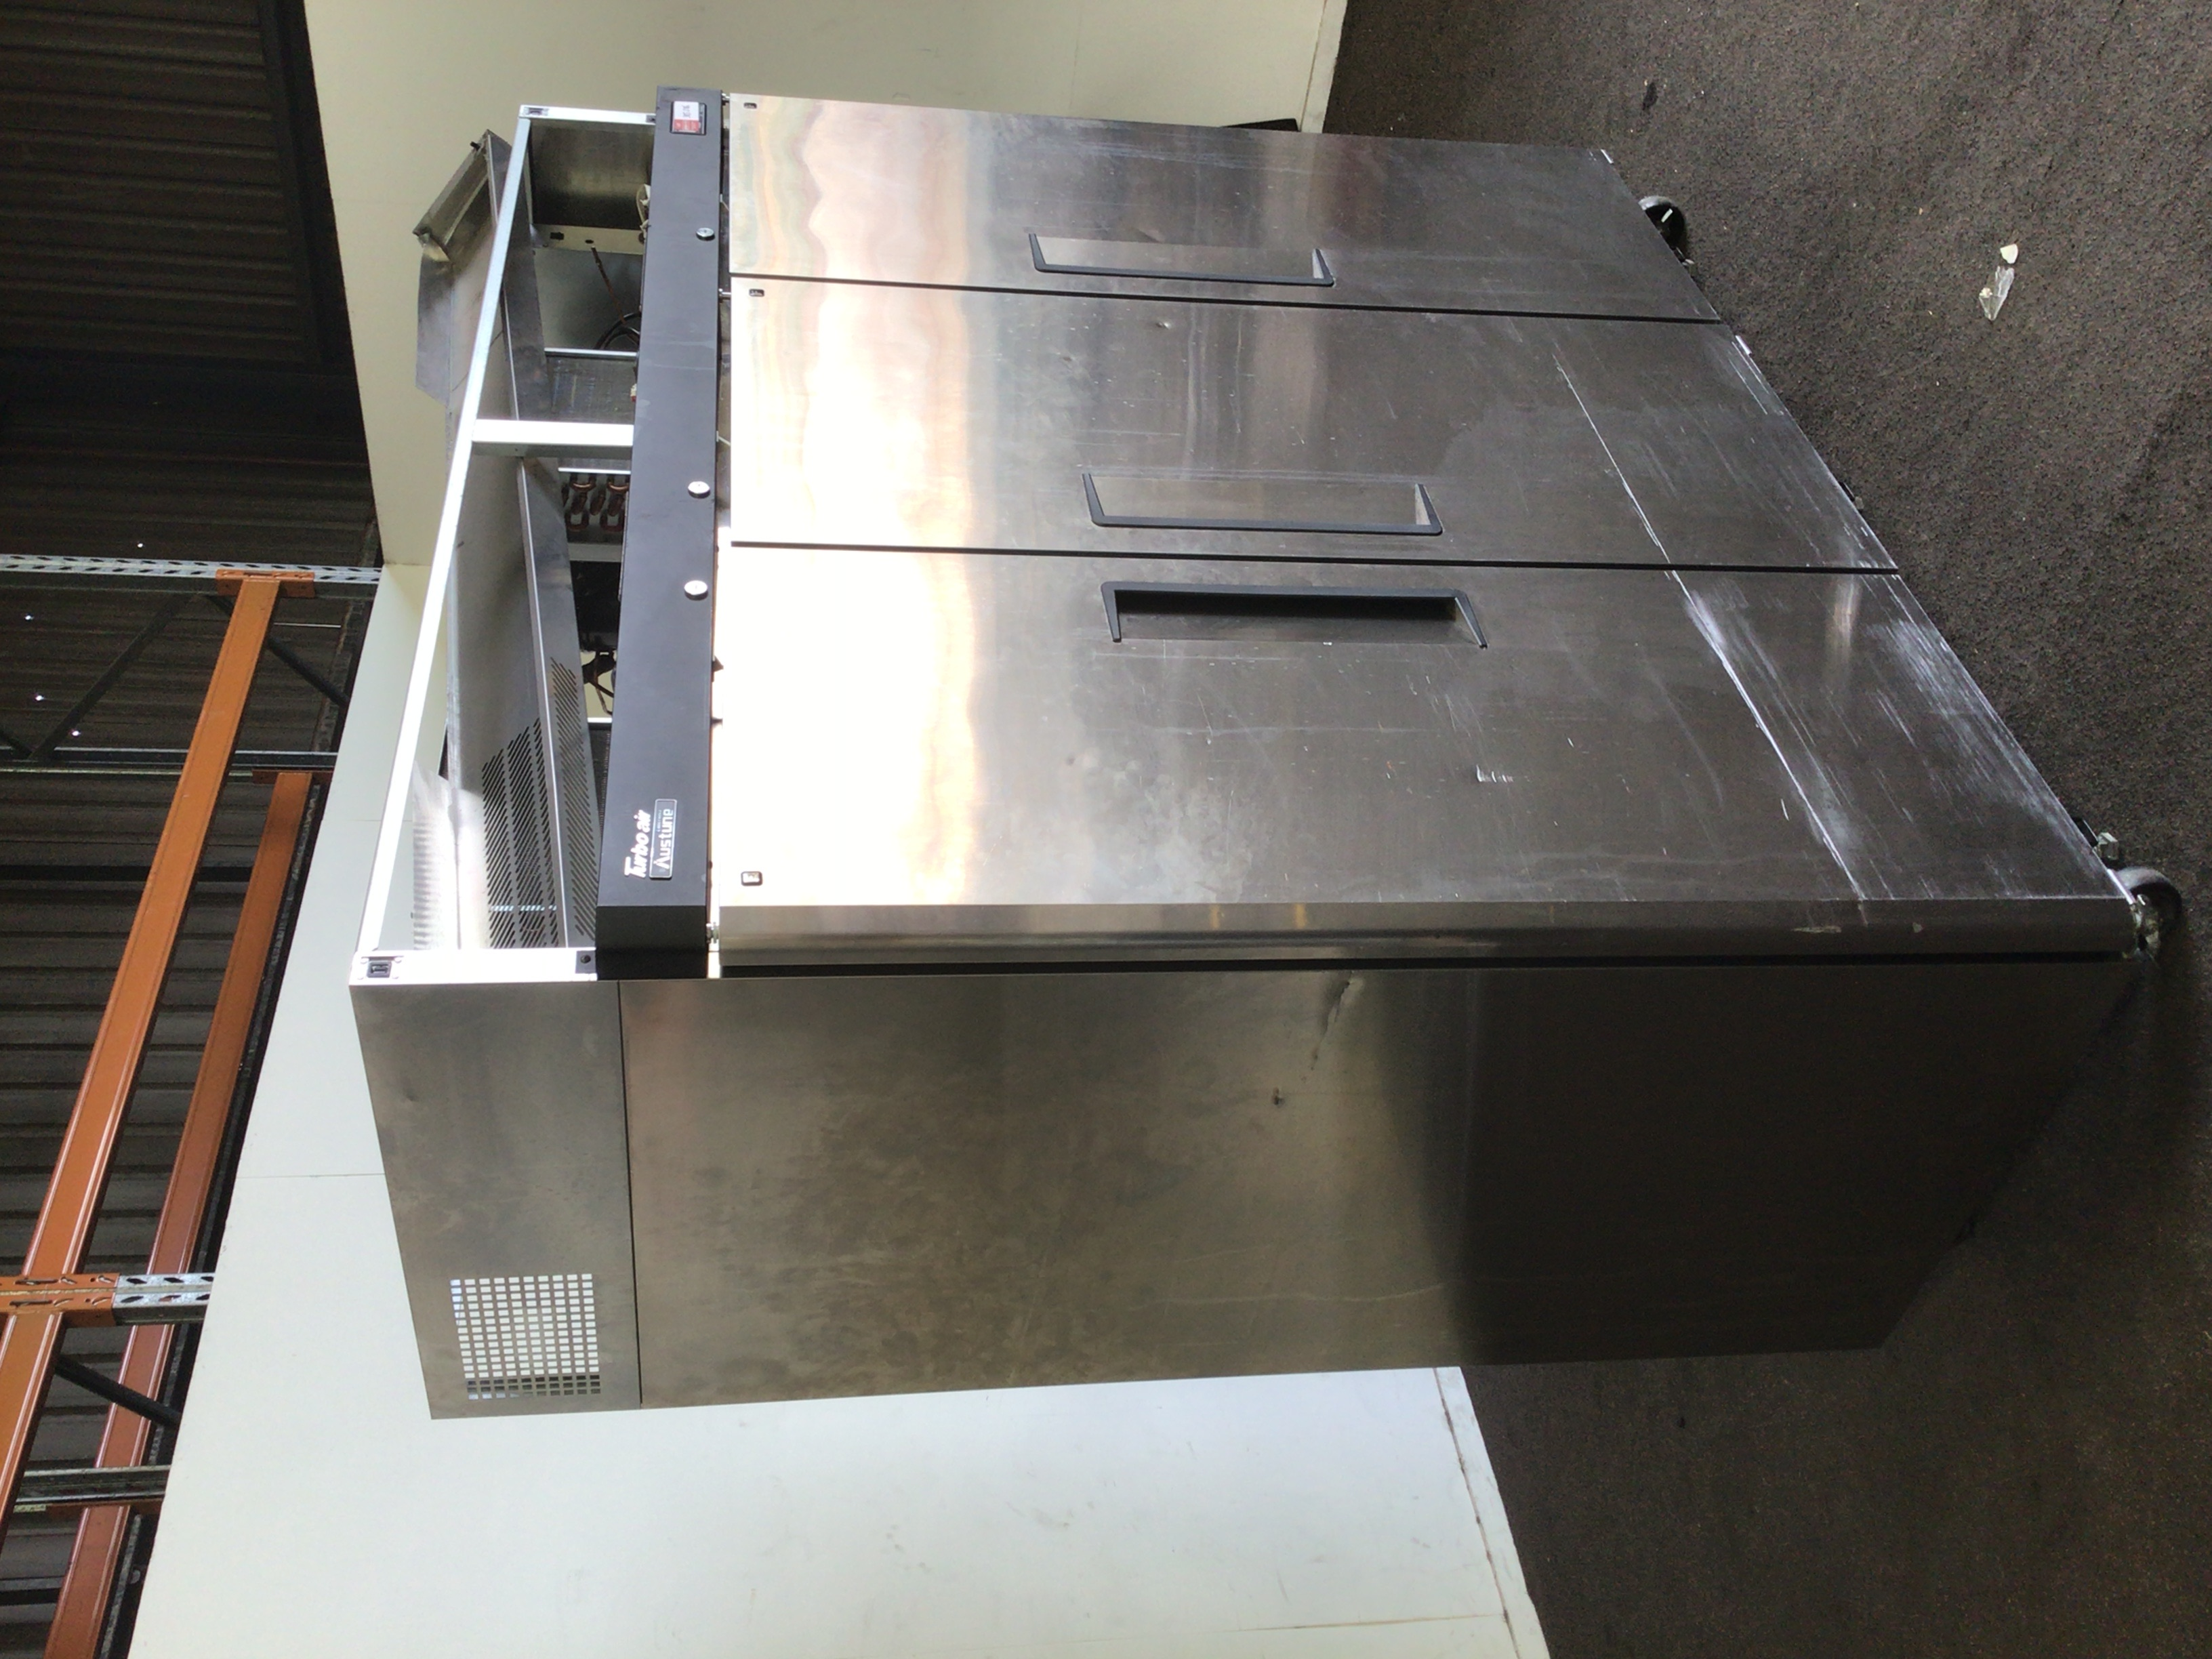 Turbo Air Upright Freezer